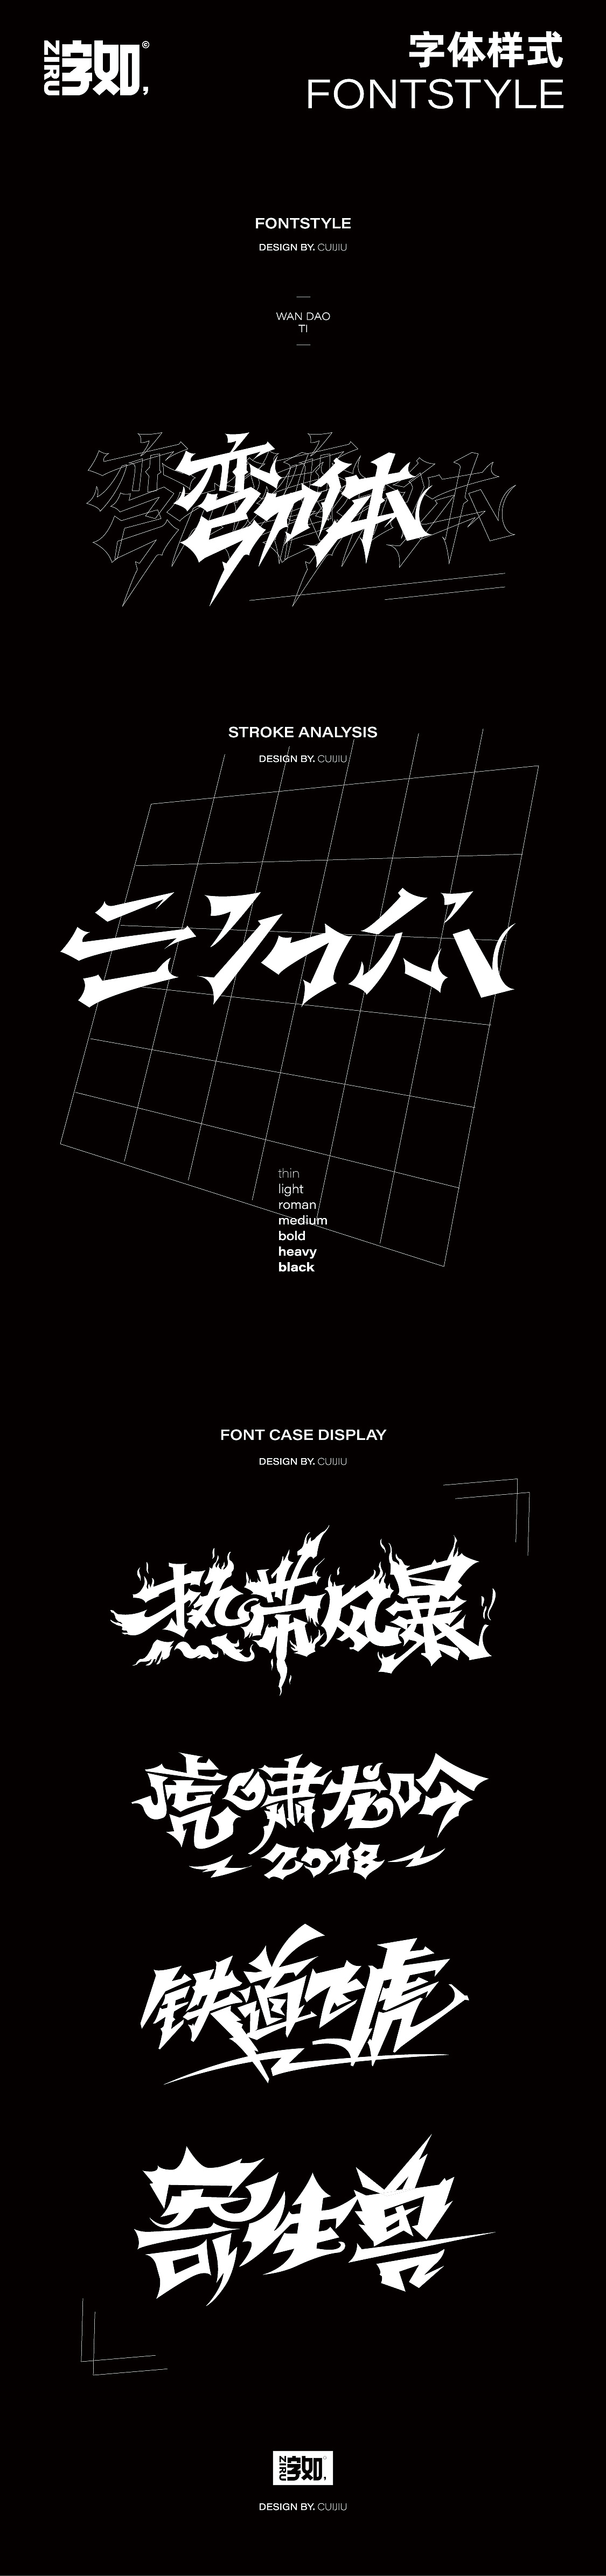 Chinese Creative Font Design-Move bricks/milk/machete/elegant song/cloud/iron wire/graffiti  ......